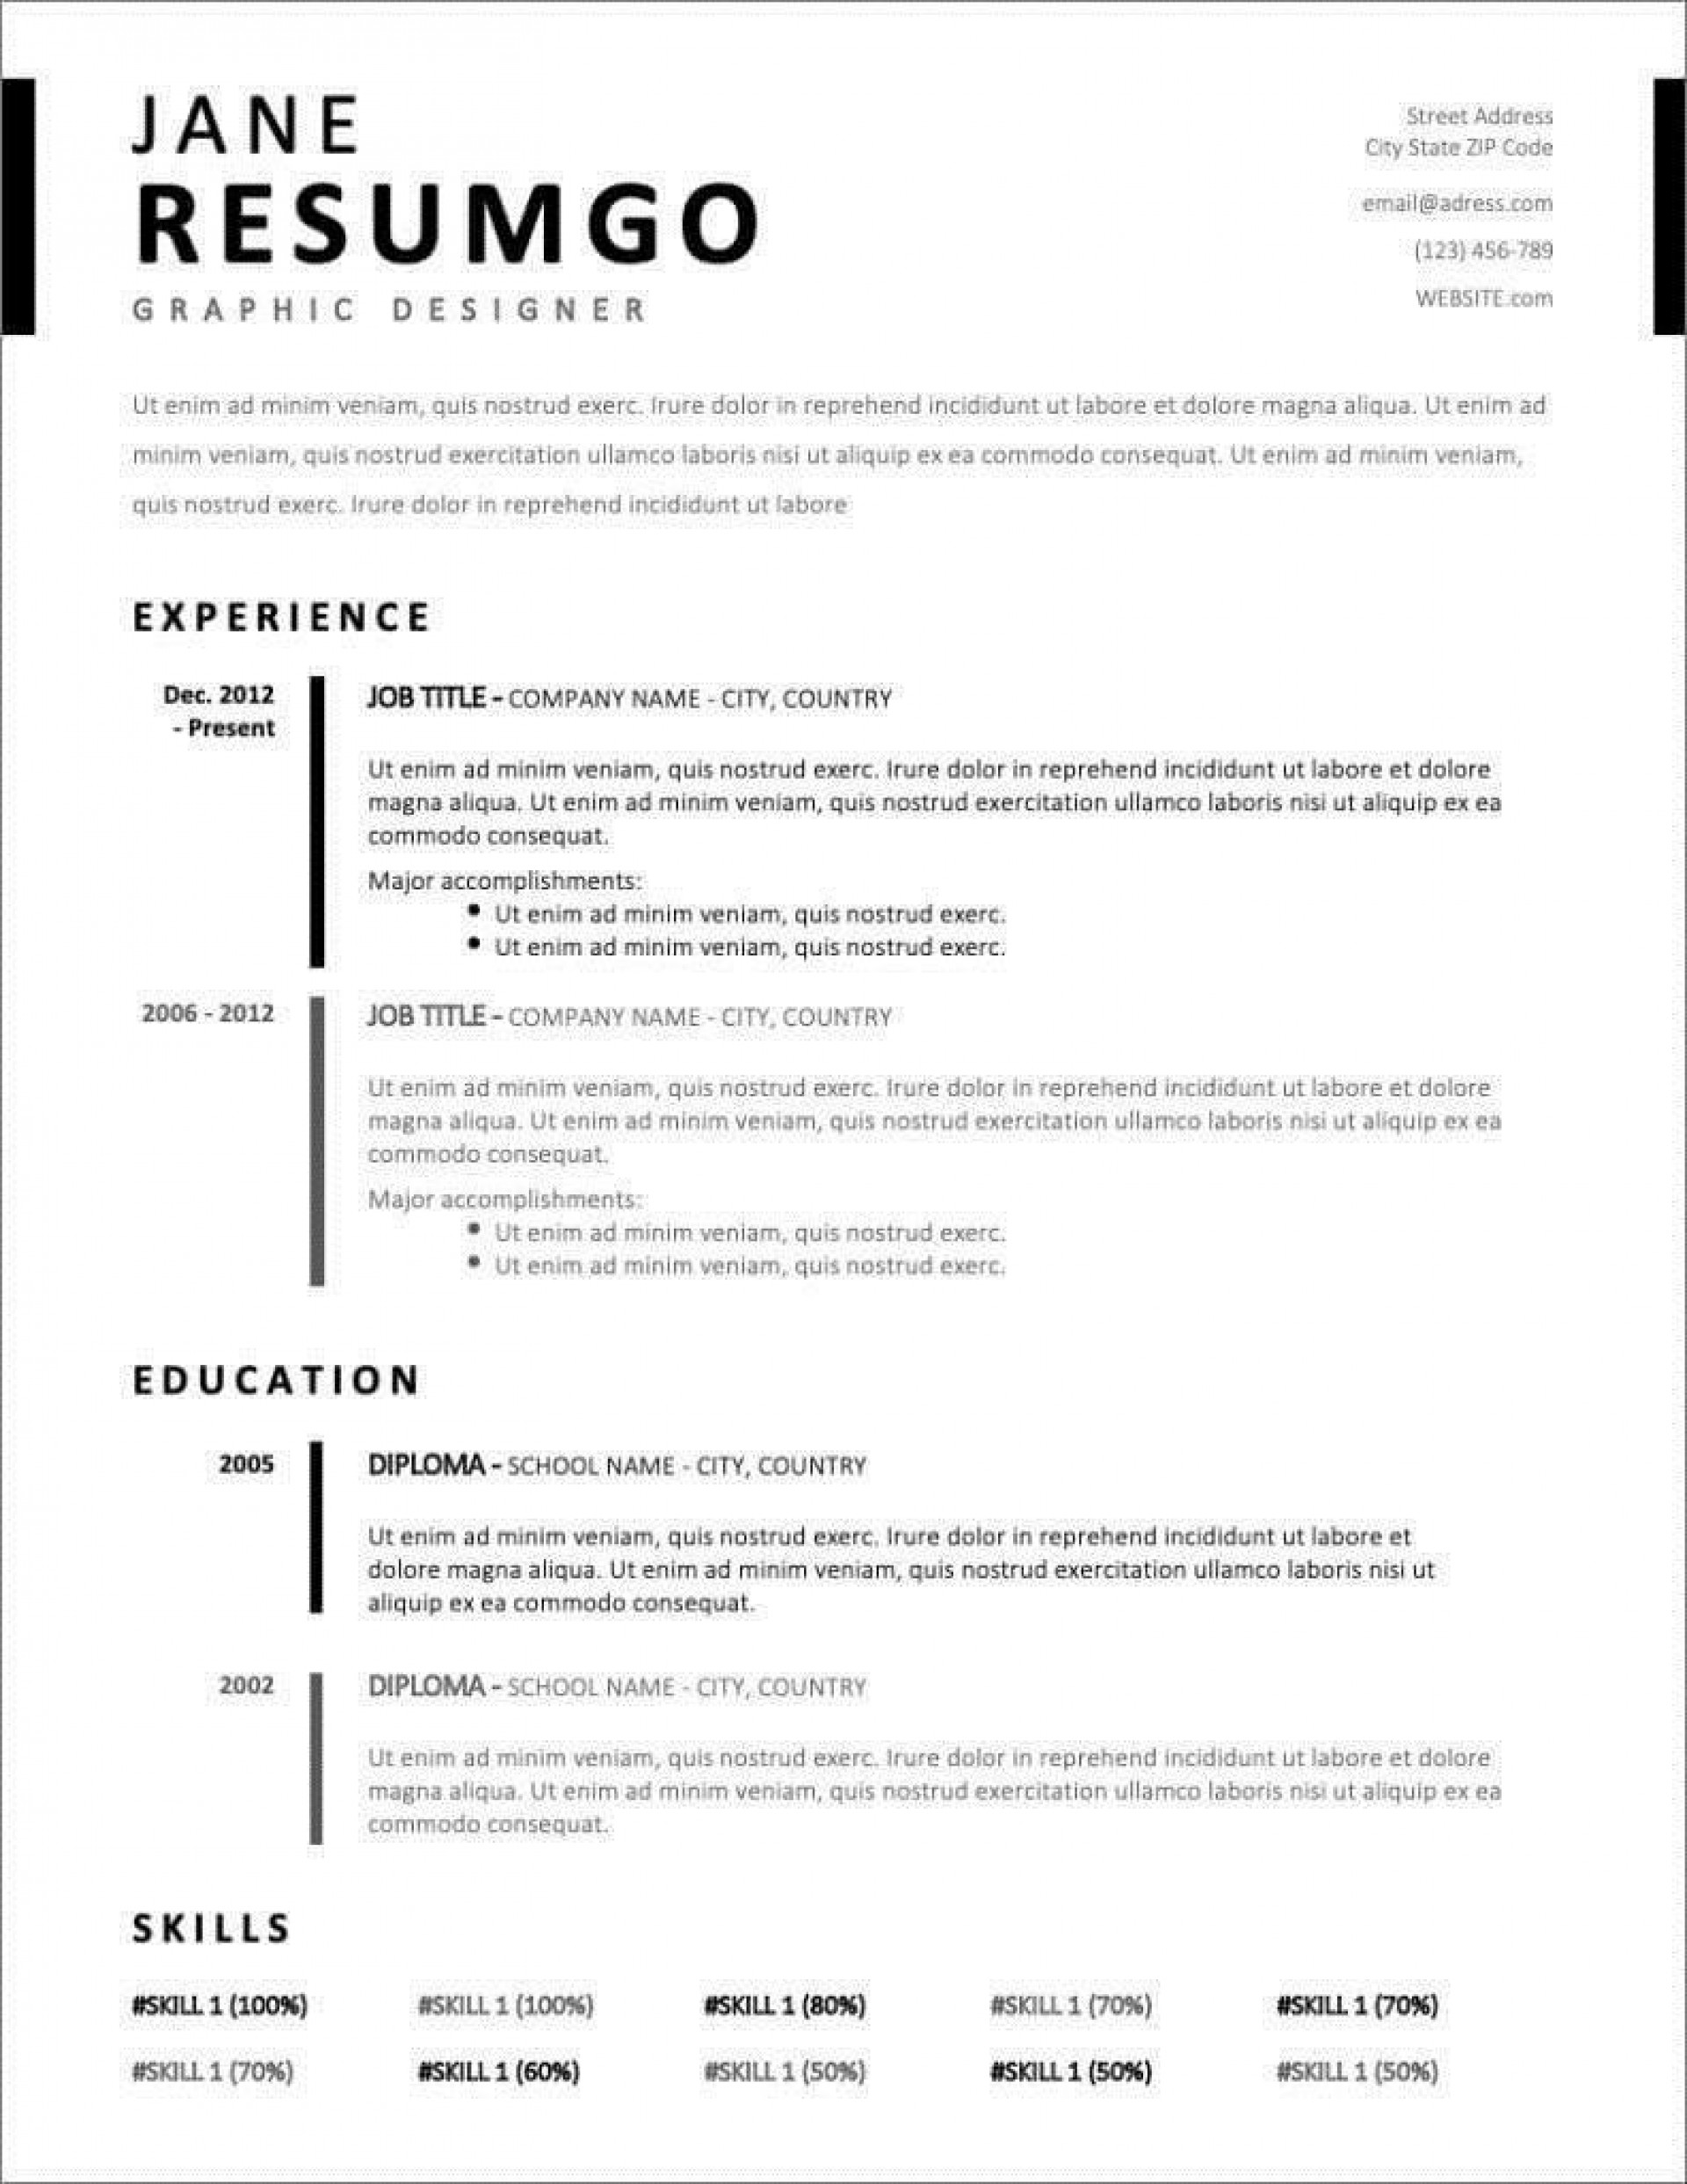 005 Awesome Download Resume Template Free Word Concept  Attractive Microsoft Simple For Creative1920